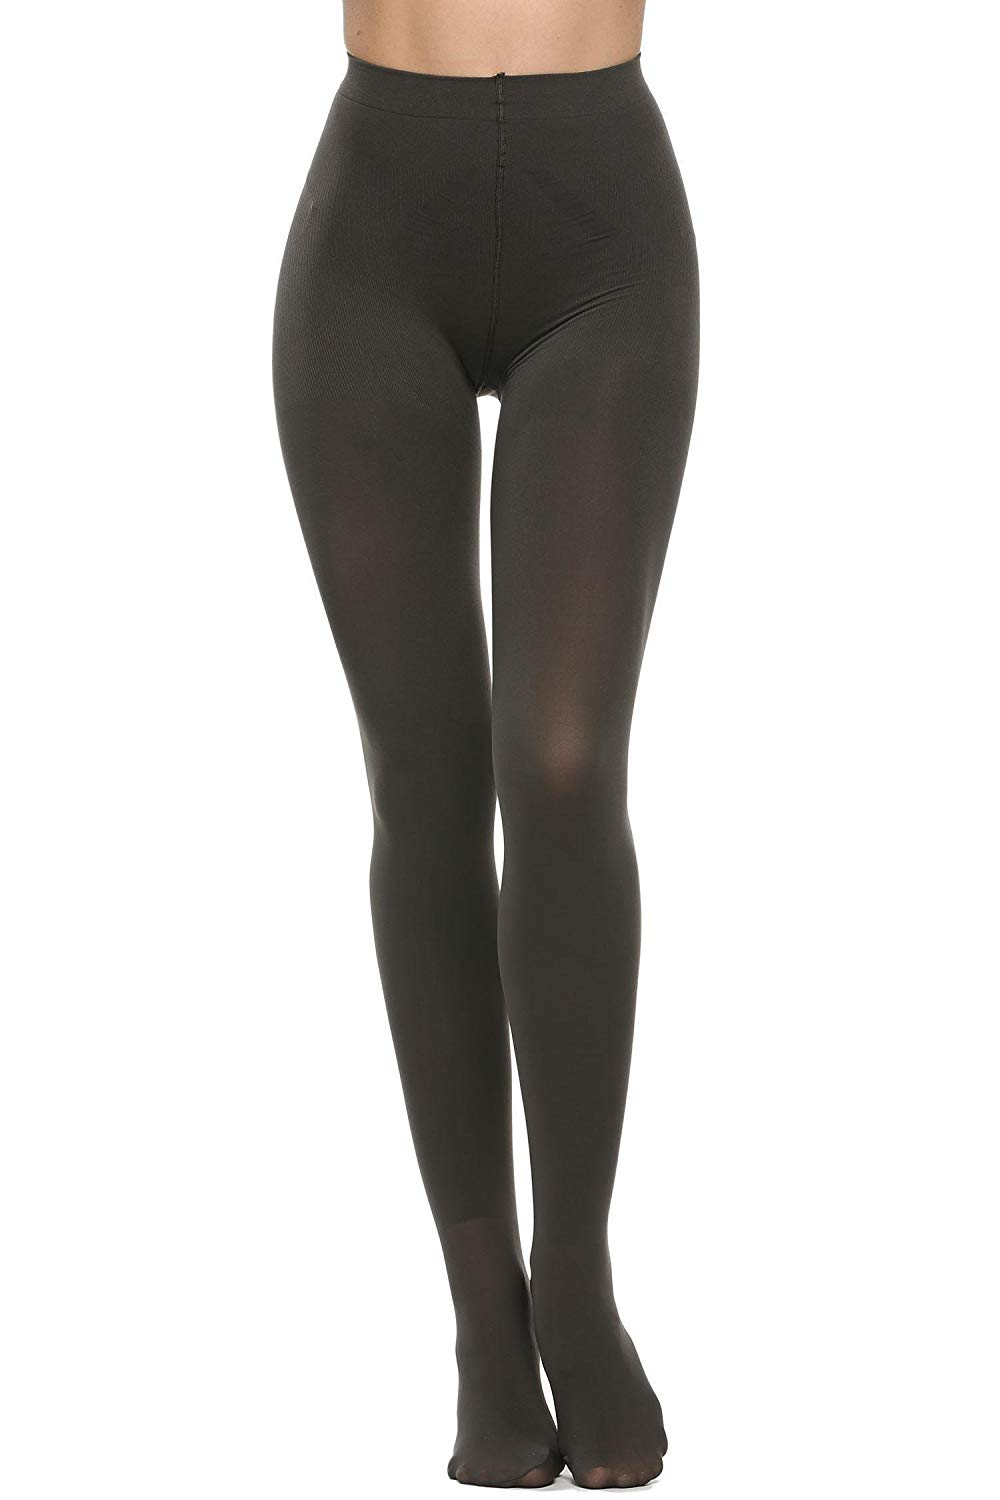 6e7de6fbc90 Get Quotations · dongba Opaque Footed Tights Footed Pantyhose Tights Black  Footed Hosiery Women Leggings